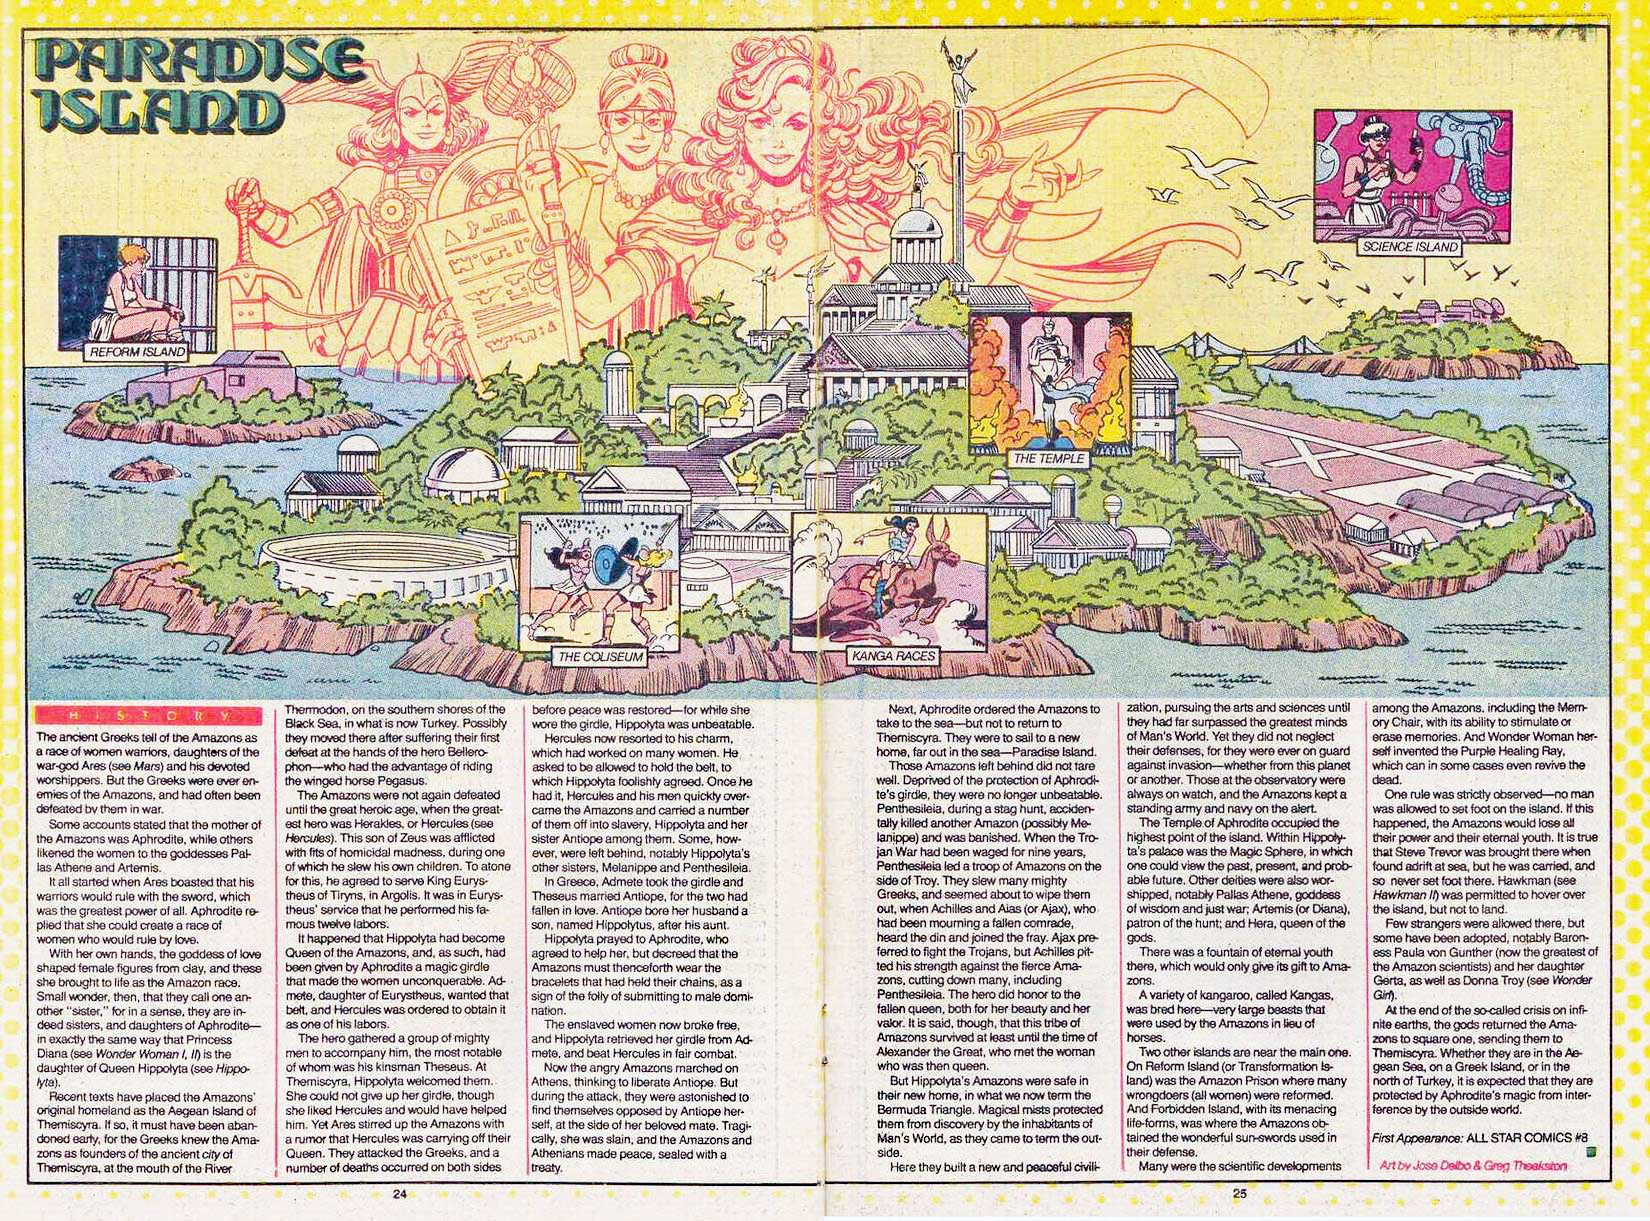 Paradise Island by Jose Delbo & Greg Theakston - Who's Who: The Definitive Directory of the DC Universe #17